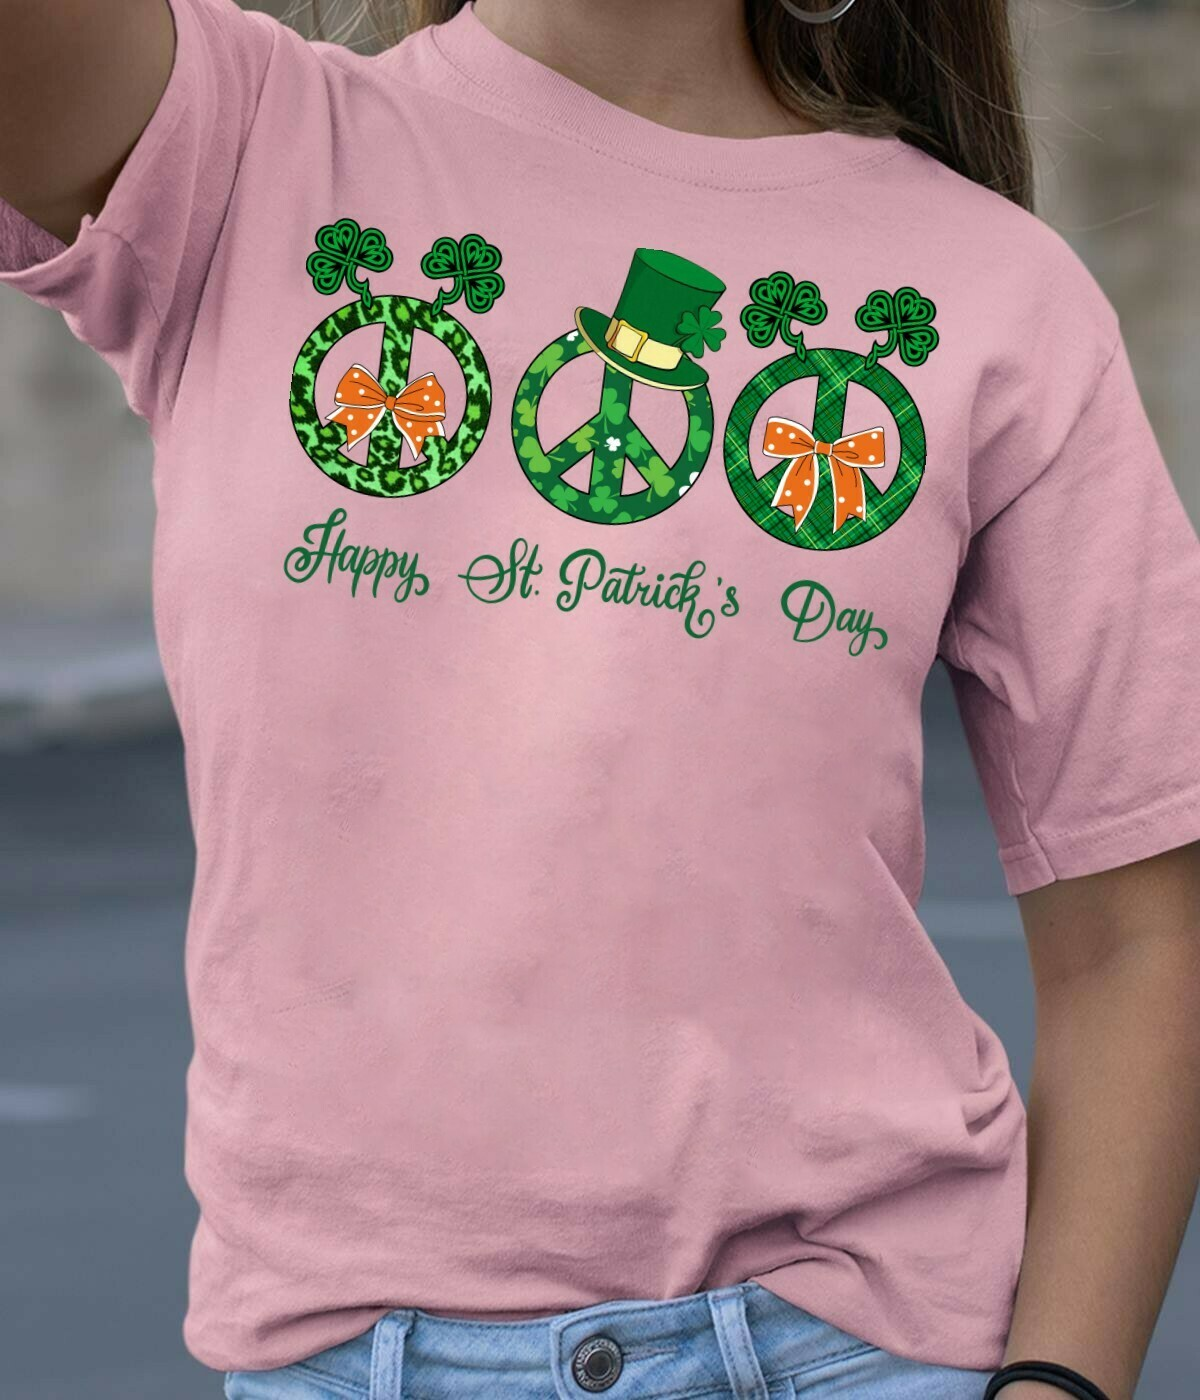 Hippie Peace sign Happy St Patrick's Day,Lucky Shamrock Peace Sign Racerback Tank,Hippie Flowery Round Car Magnet  T-Shirt Hoodie Sweatshirt Sweater Tee Kids Youth Gifts Jolly Family Gifts